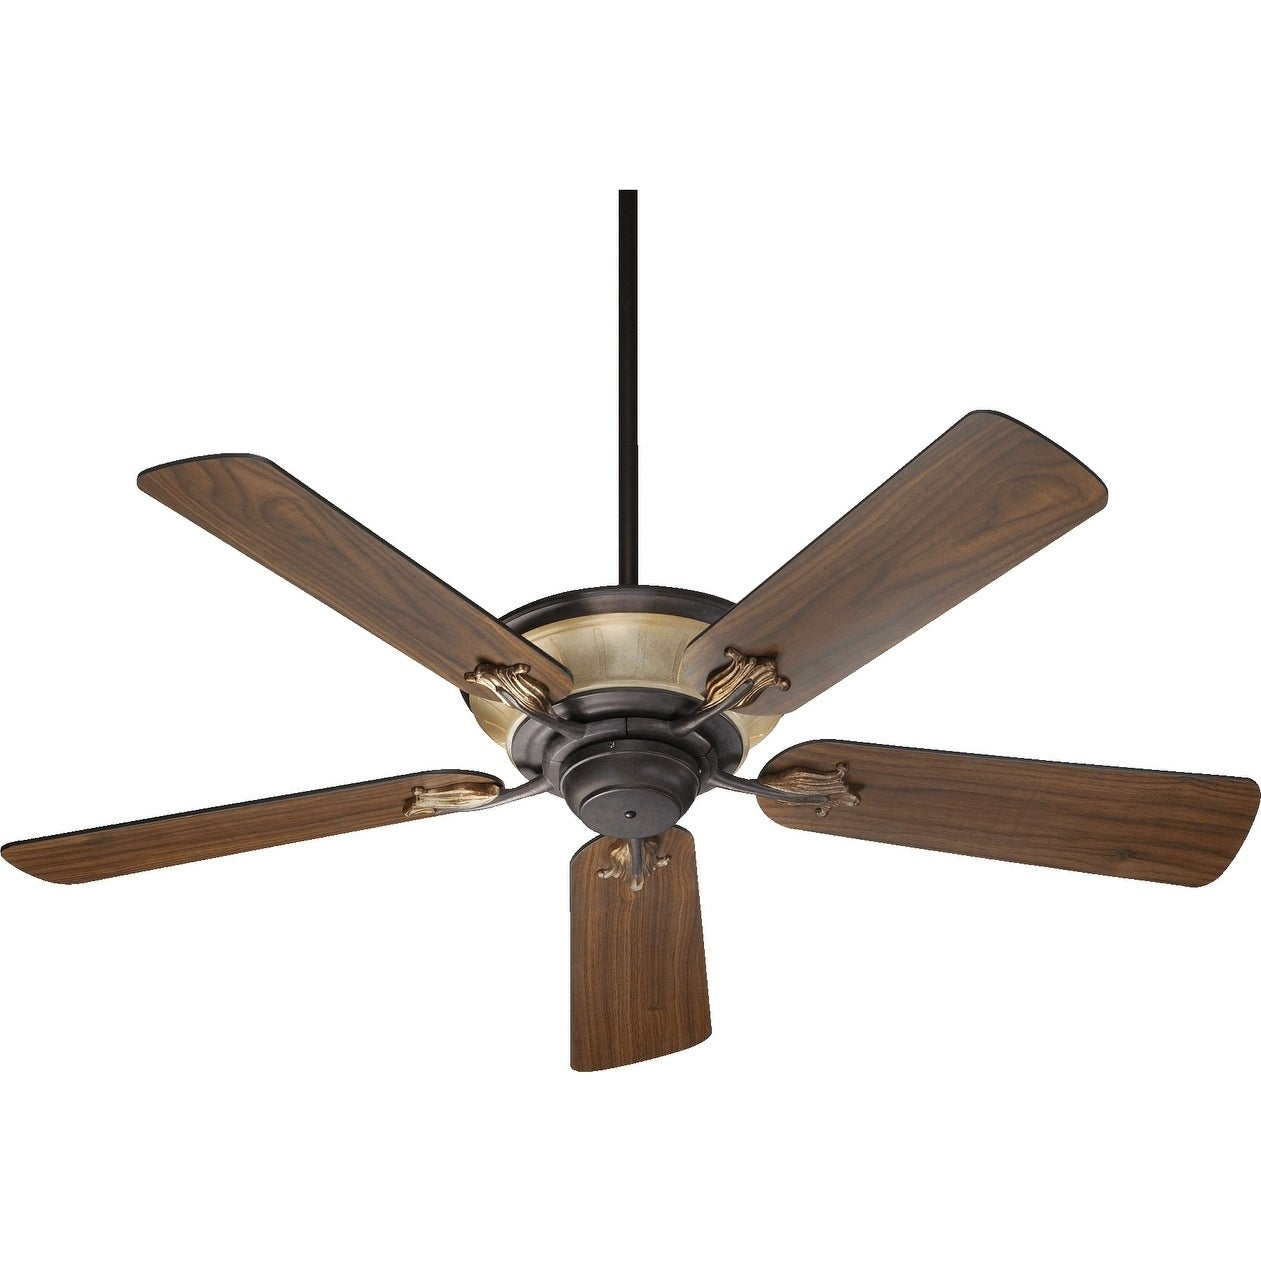 Buy Light Kit Included Ceiling Fans - Clearance & Liquidation Online ...